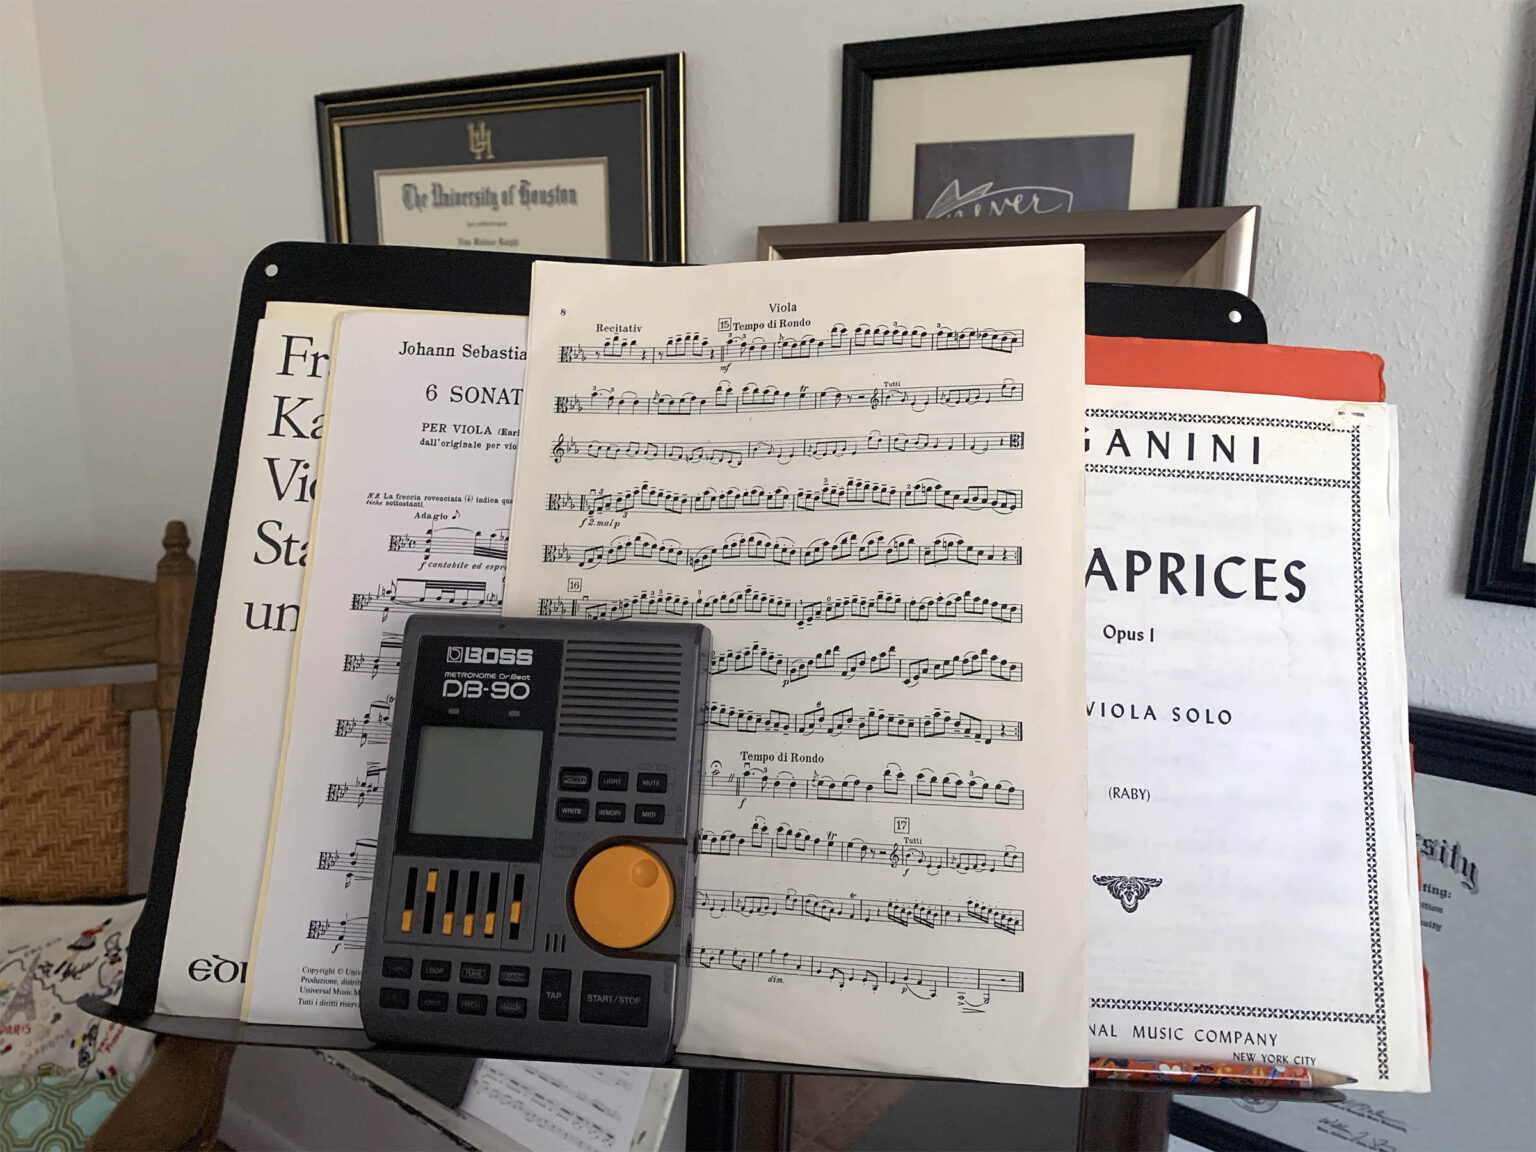 metronome and music on stand